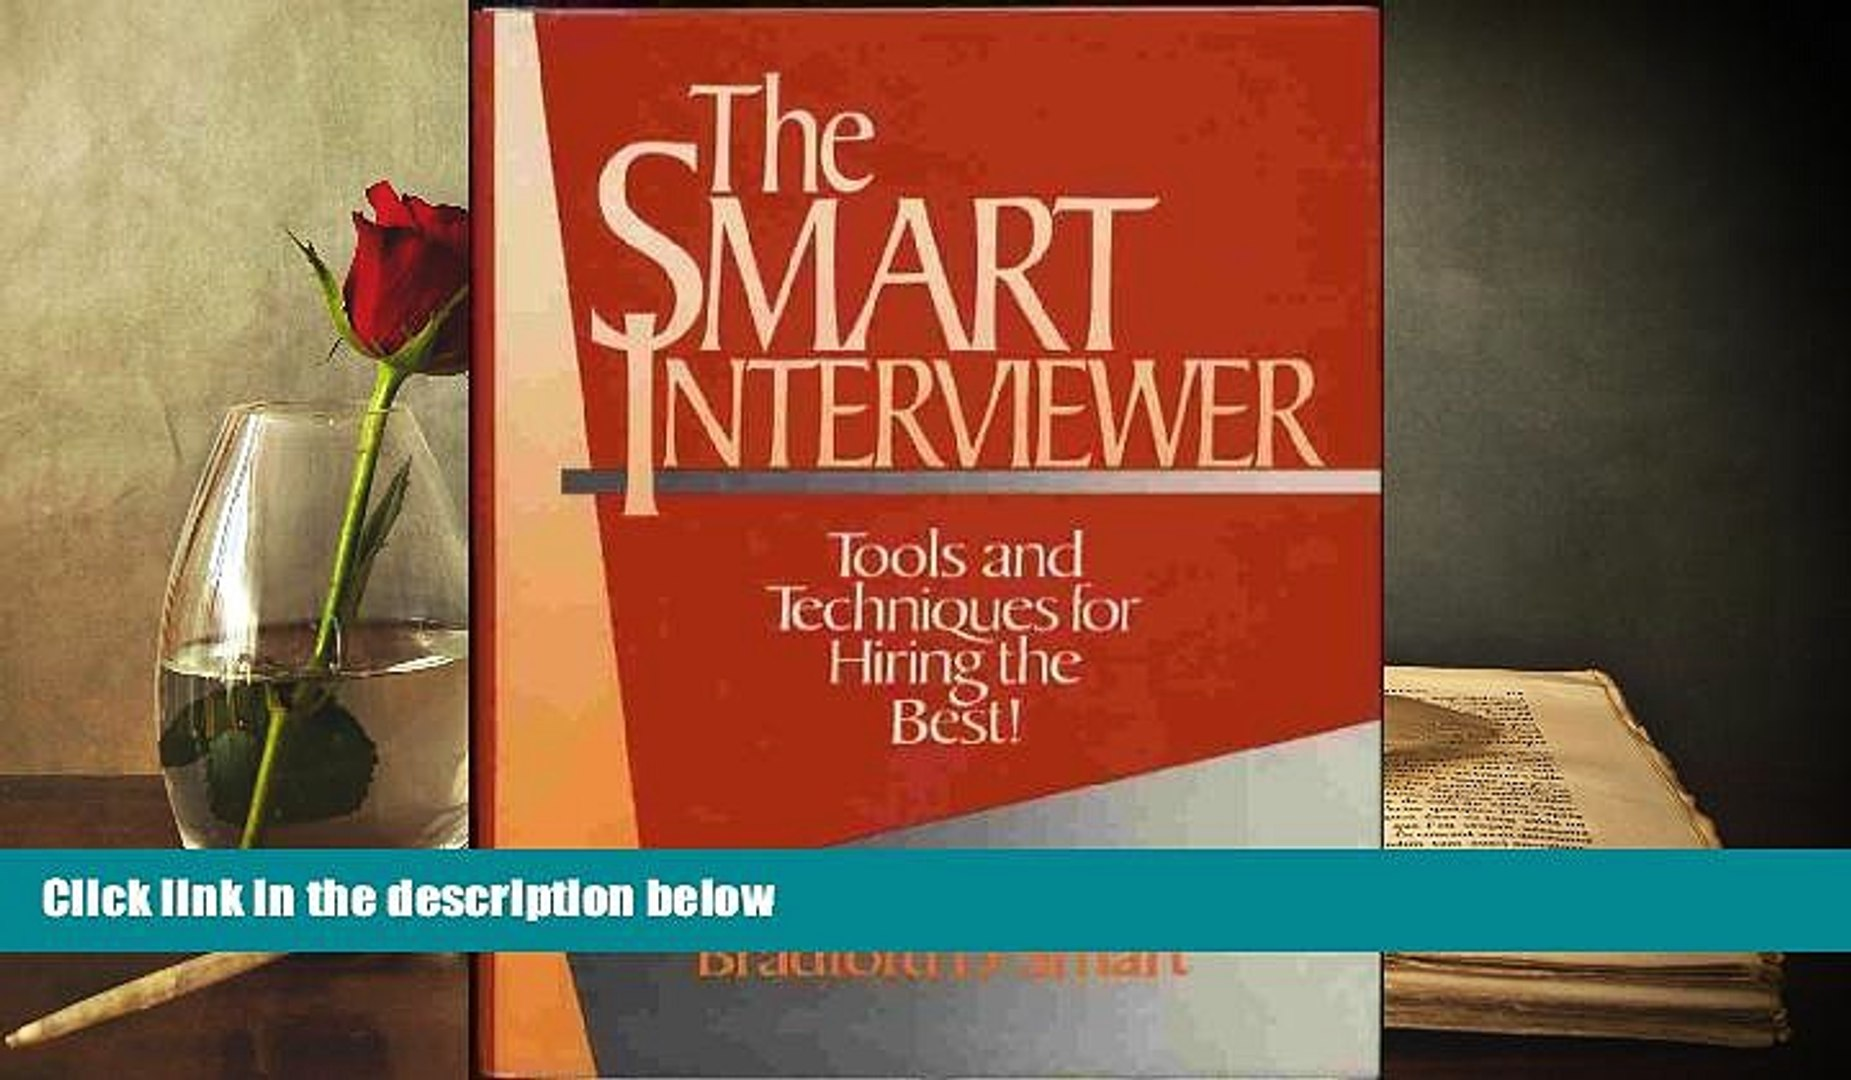 The Smart Interviewer: Tools and Techniques for Hiring the Best